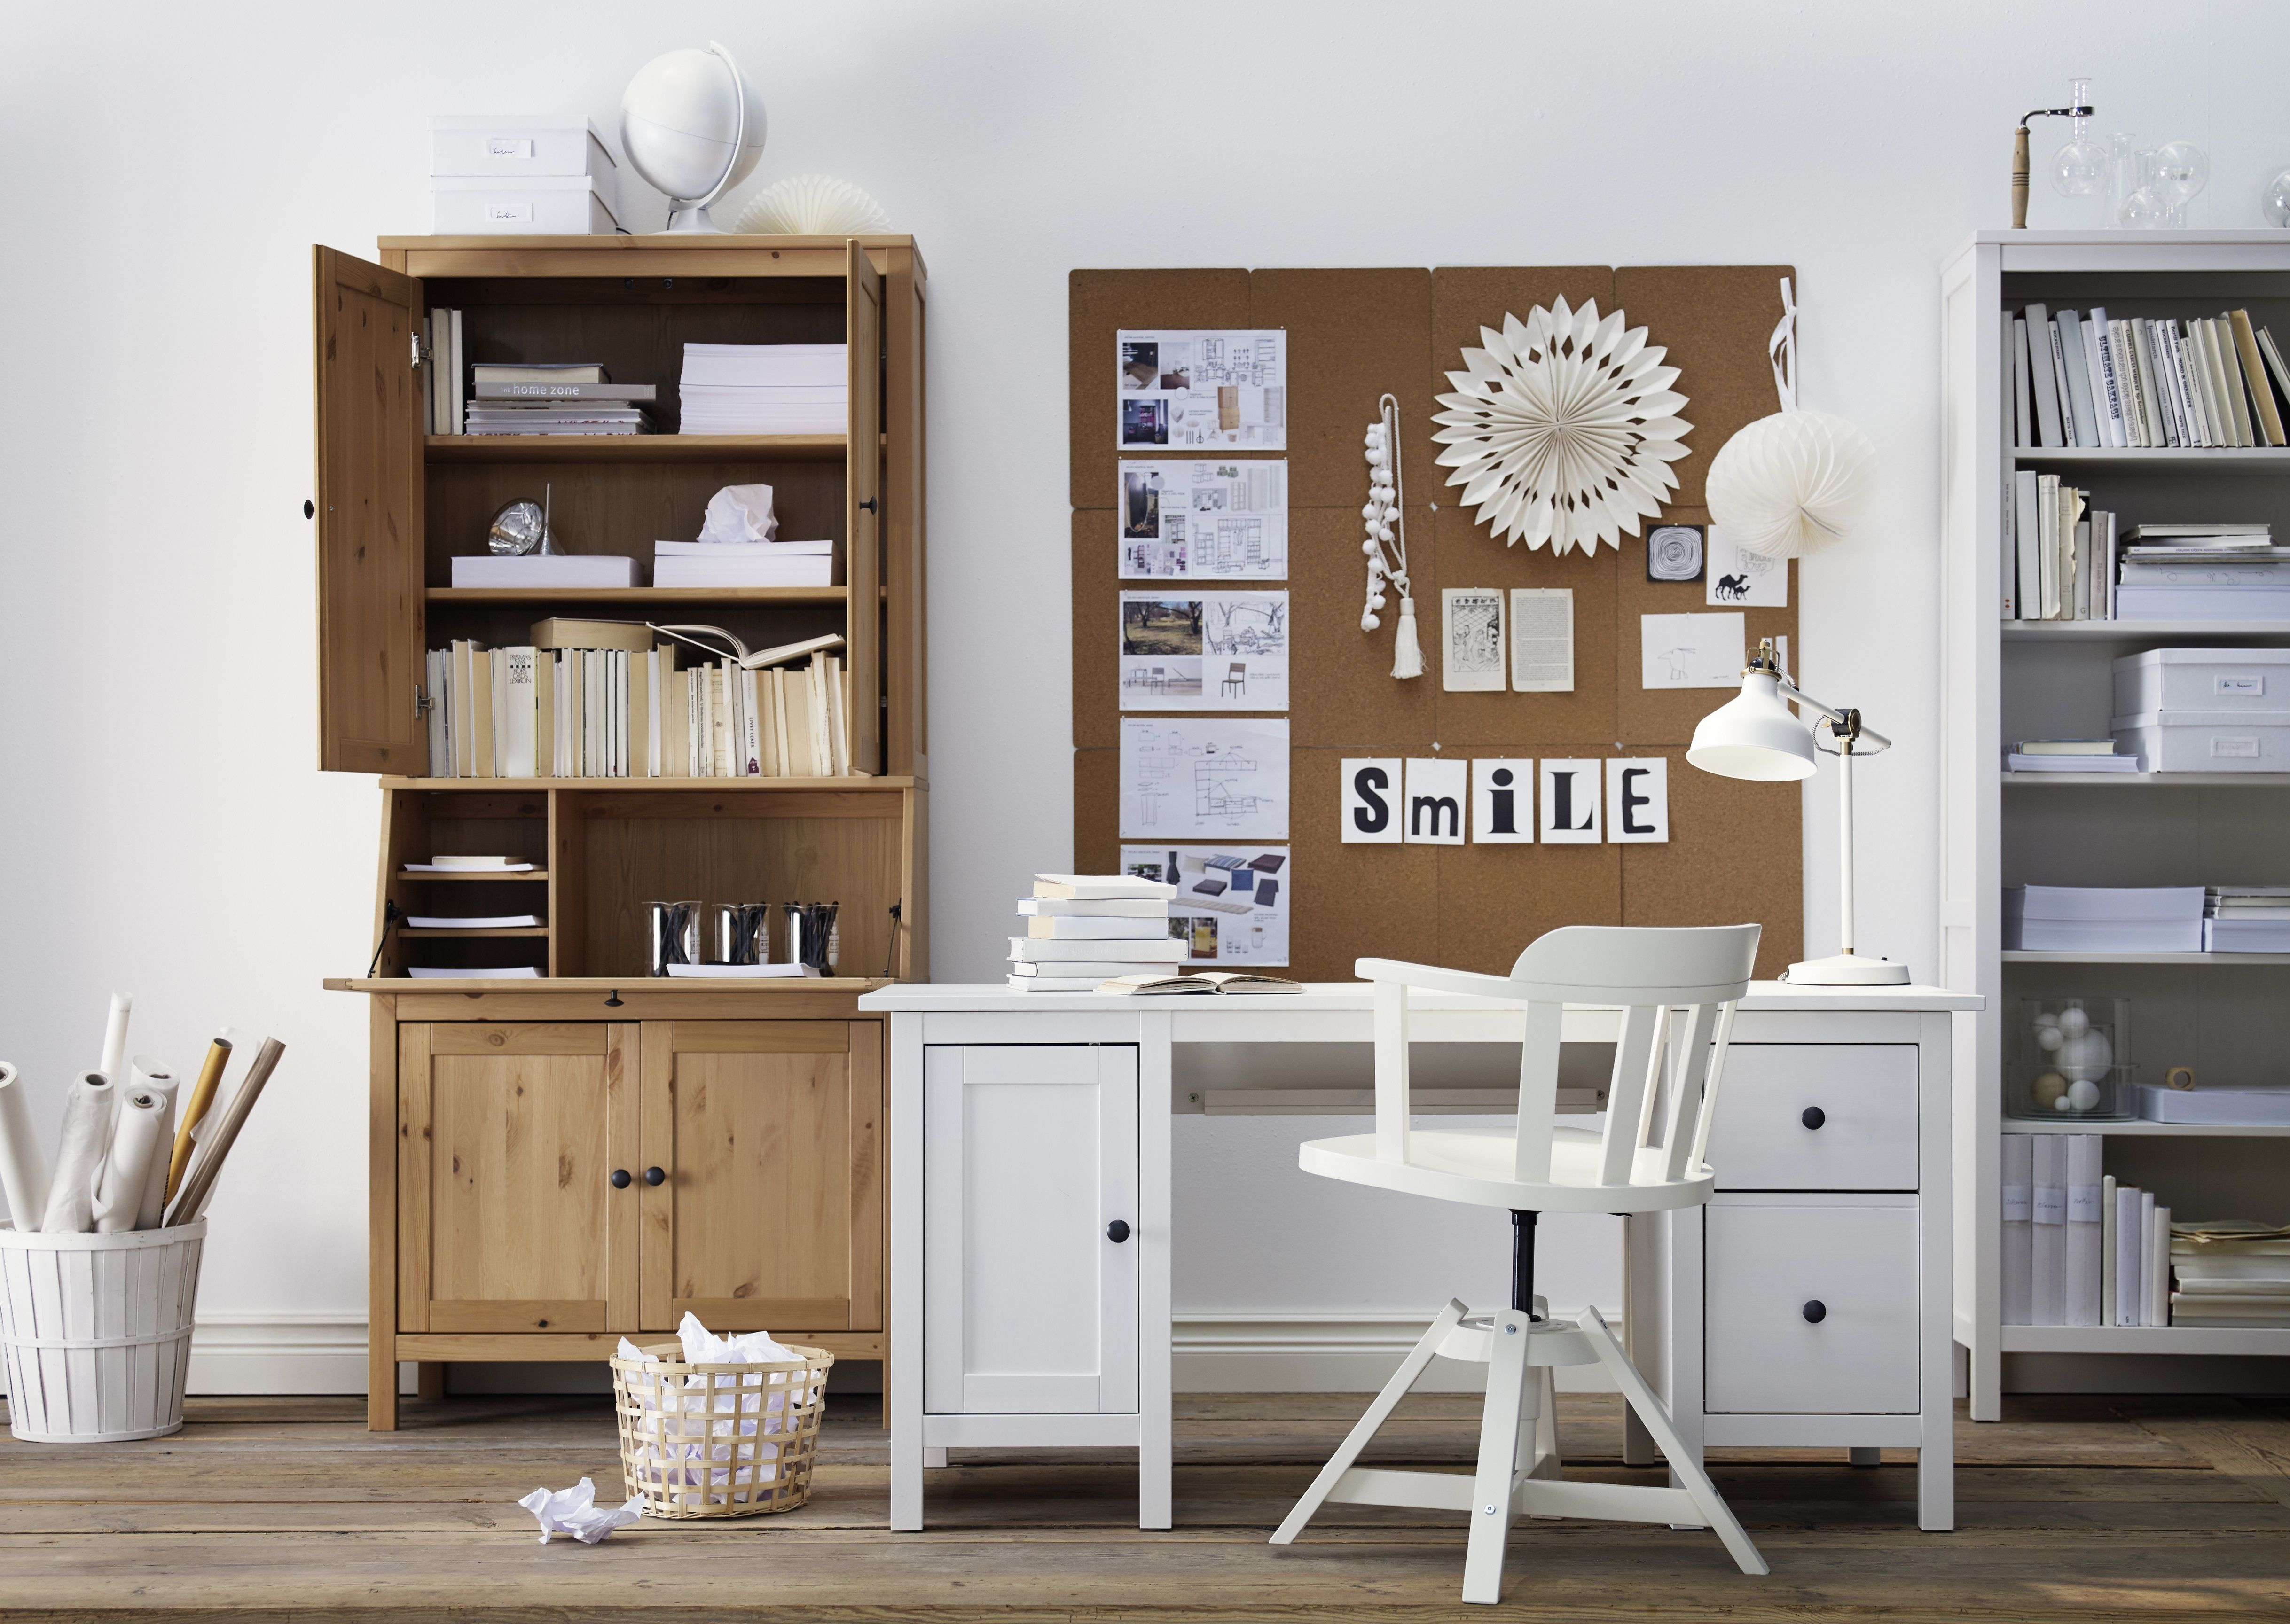 Hemnes Bureau Ikea Wit.Hemnes Bureau Wit Gebeitst Study Out Loud In 2019